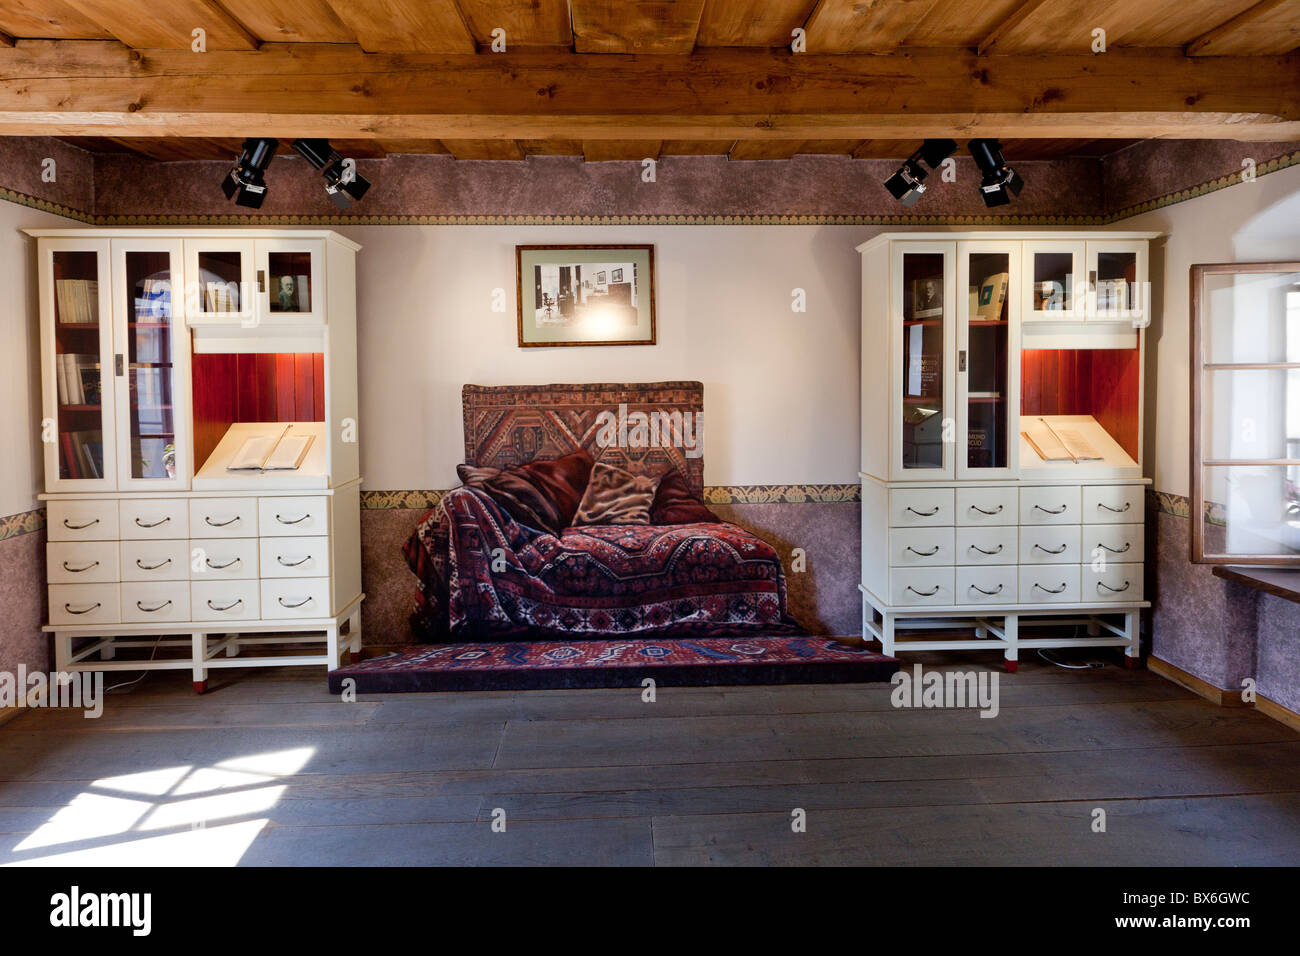 room, sofa, couch, Sigmund Freud, psychoanalyst, native house, Pribor - Stock Image